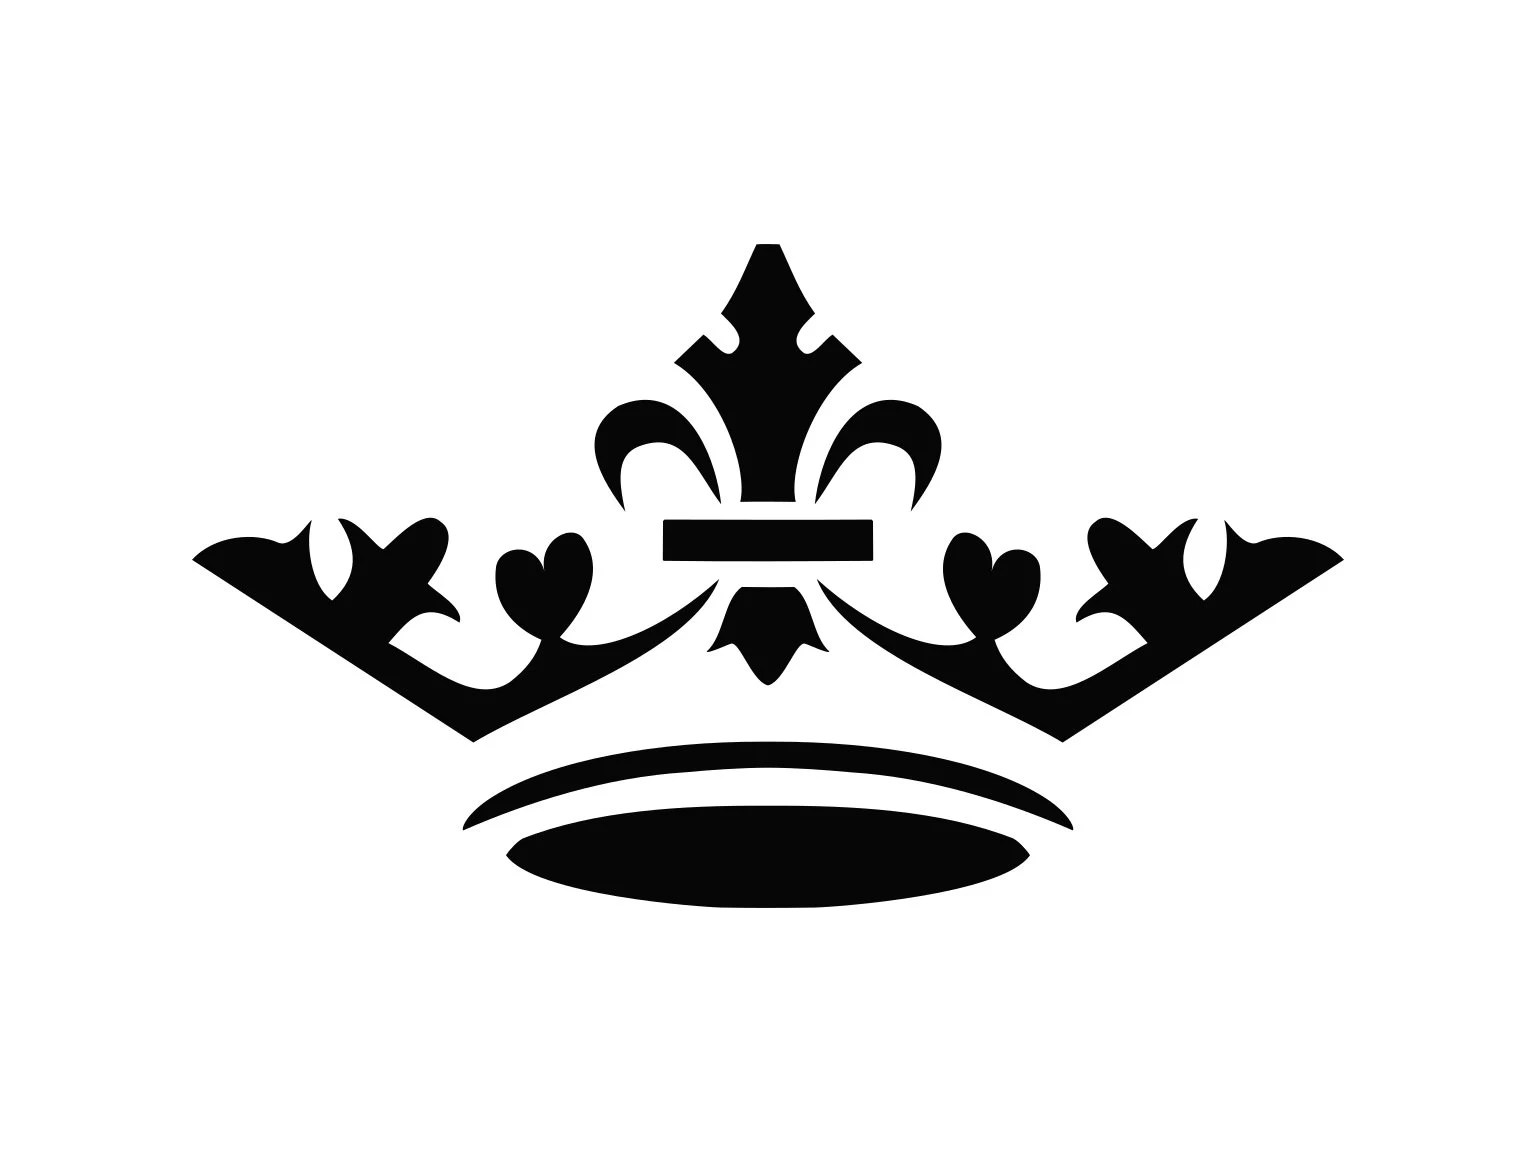 Crown Svg Princess Svg Princess Crown Svg Crown Clipart